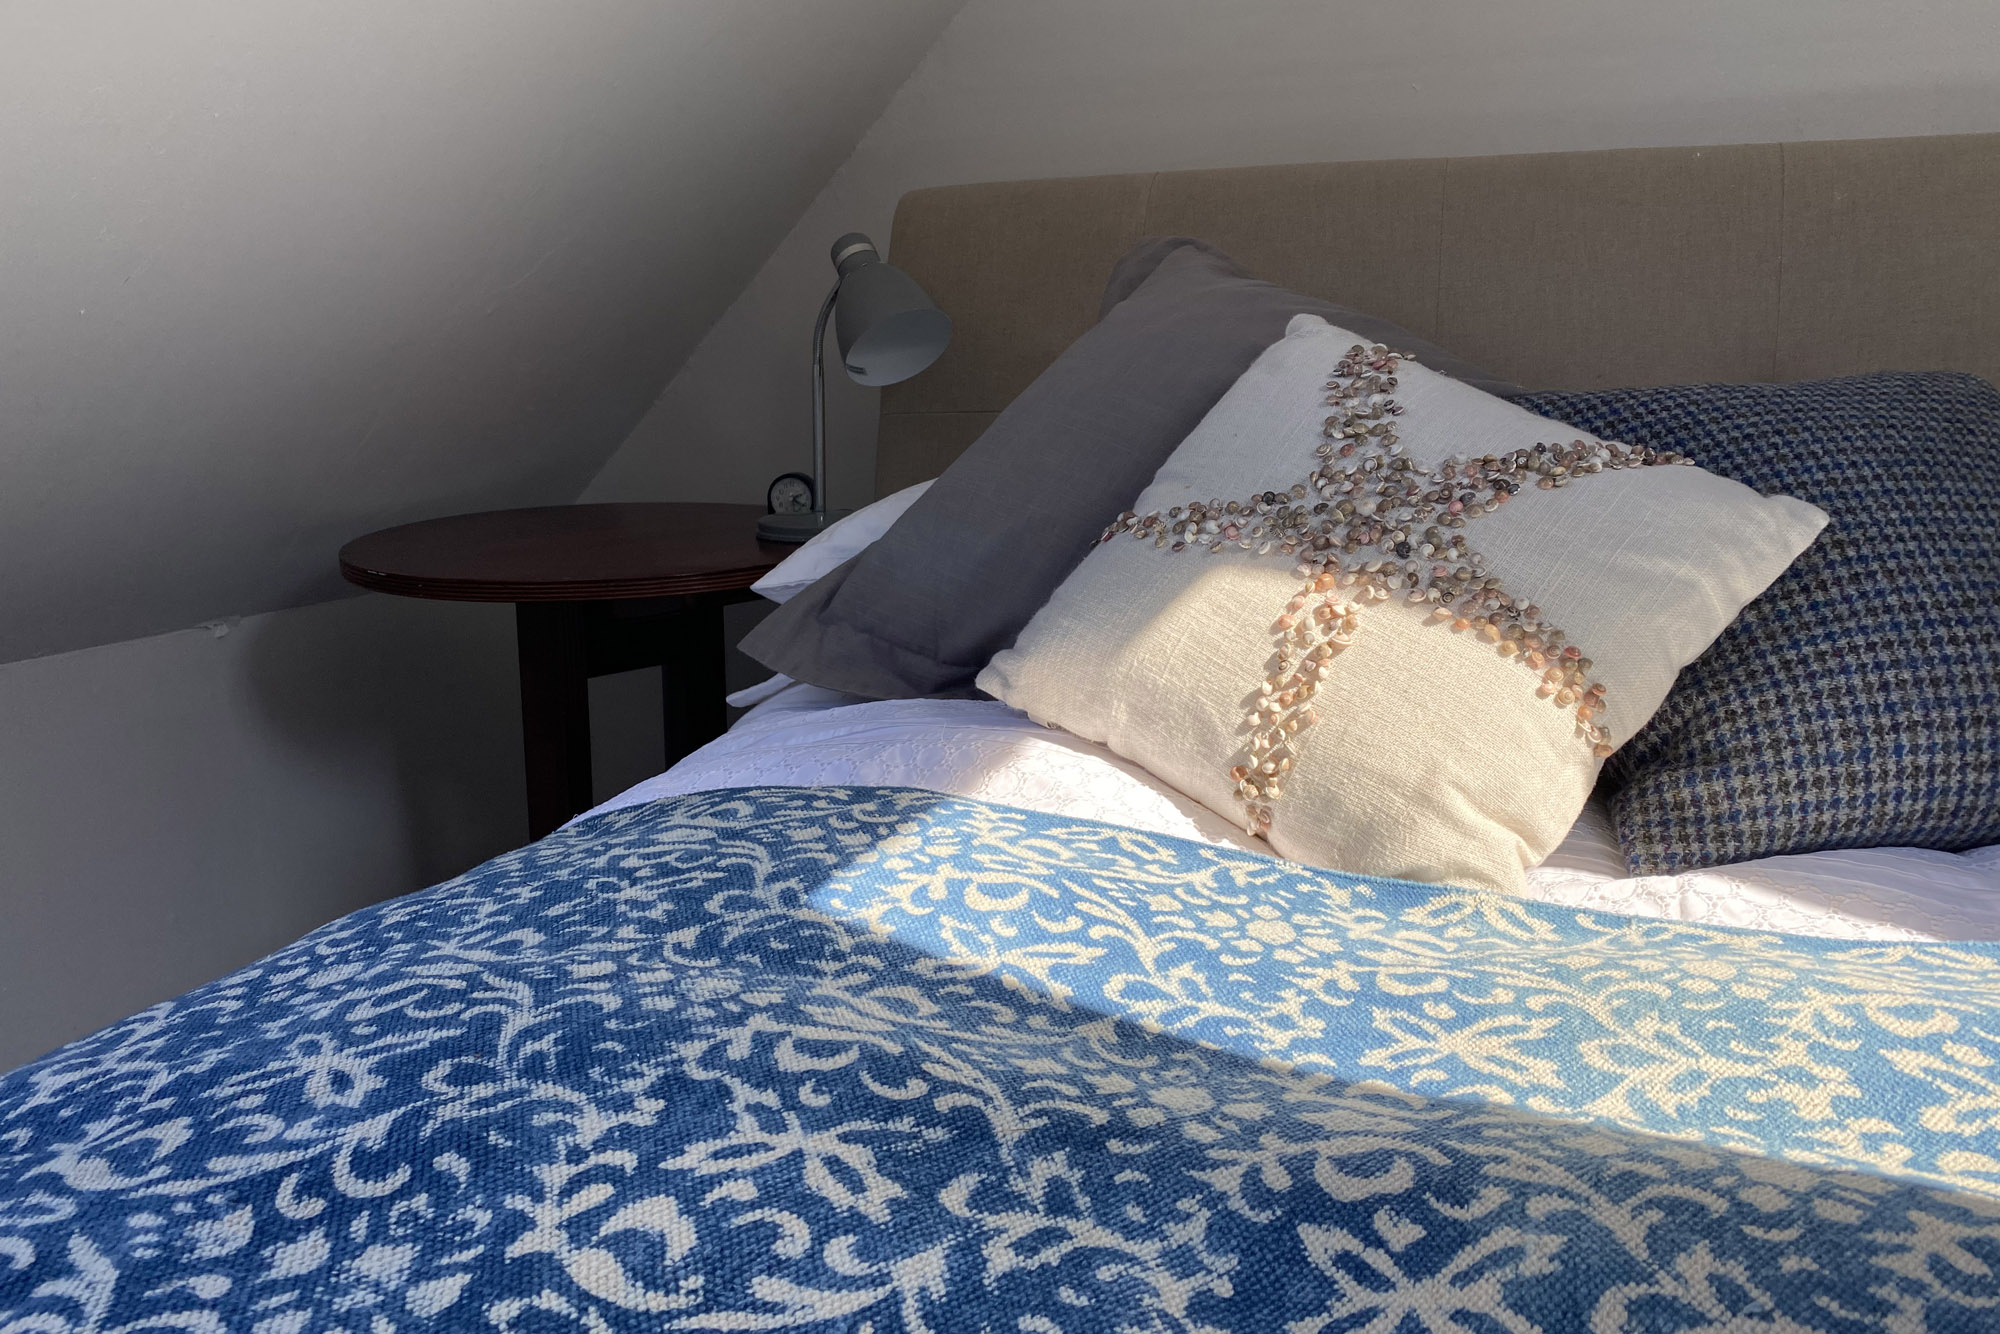 Star fish pillow on comfy bed | Hotel in the Highlands